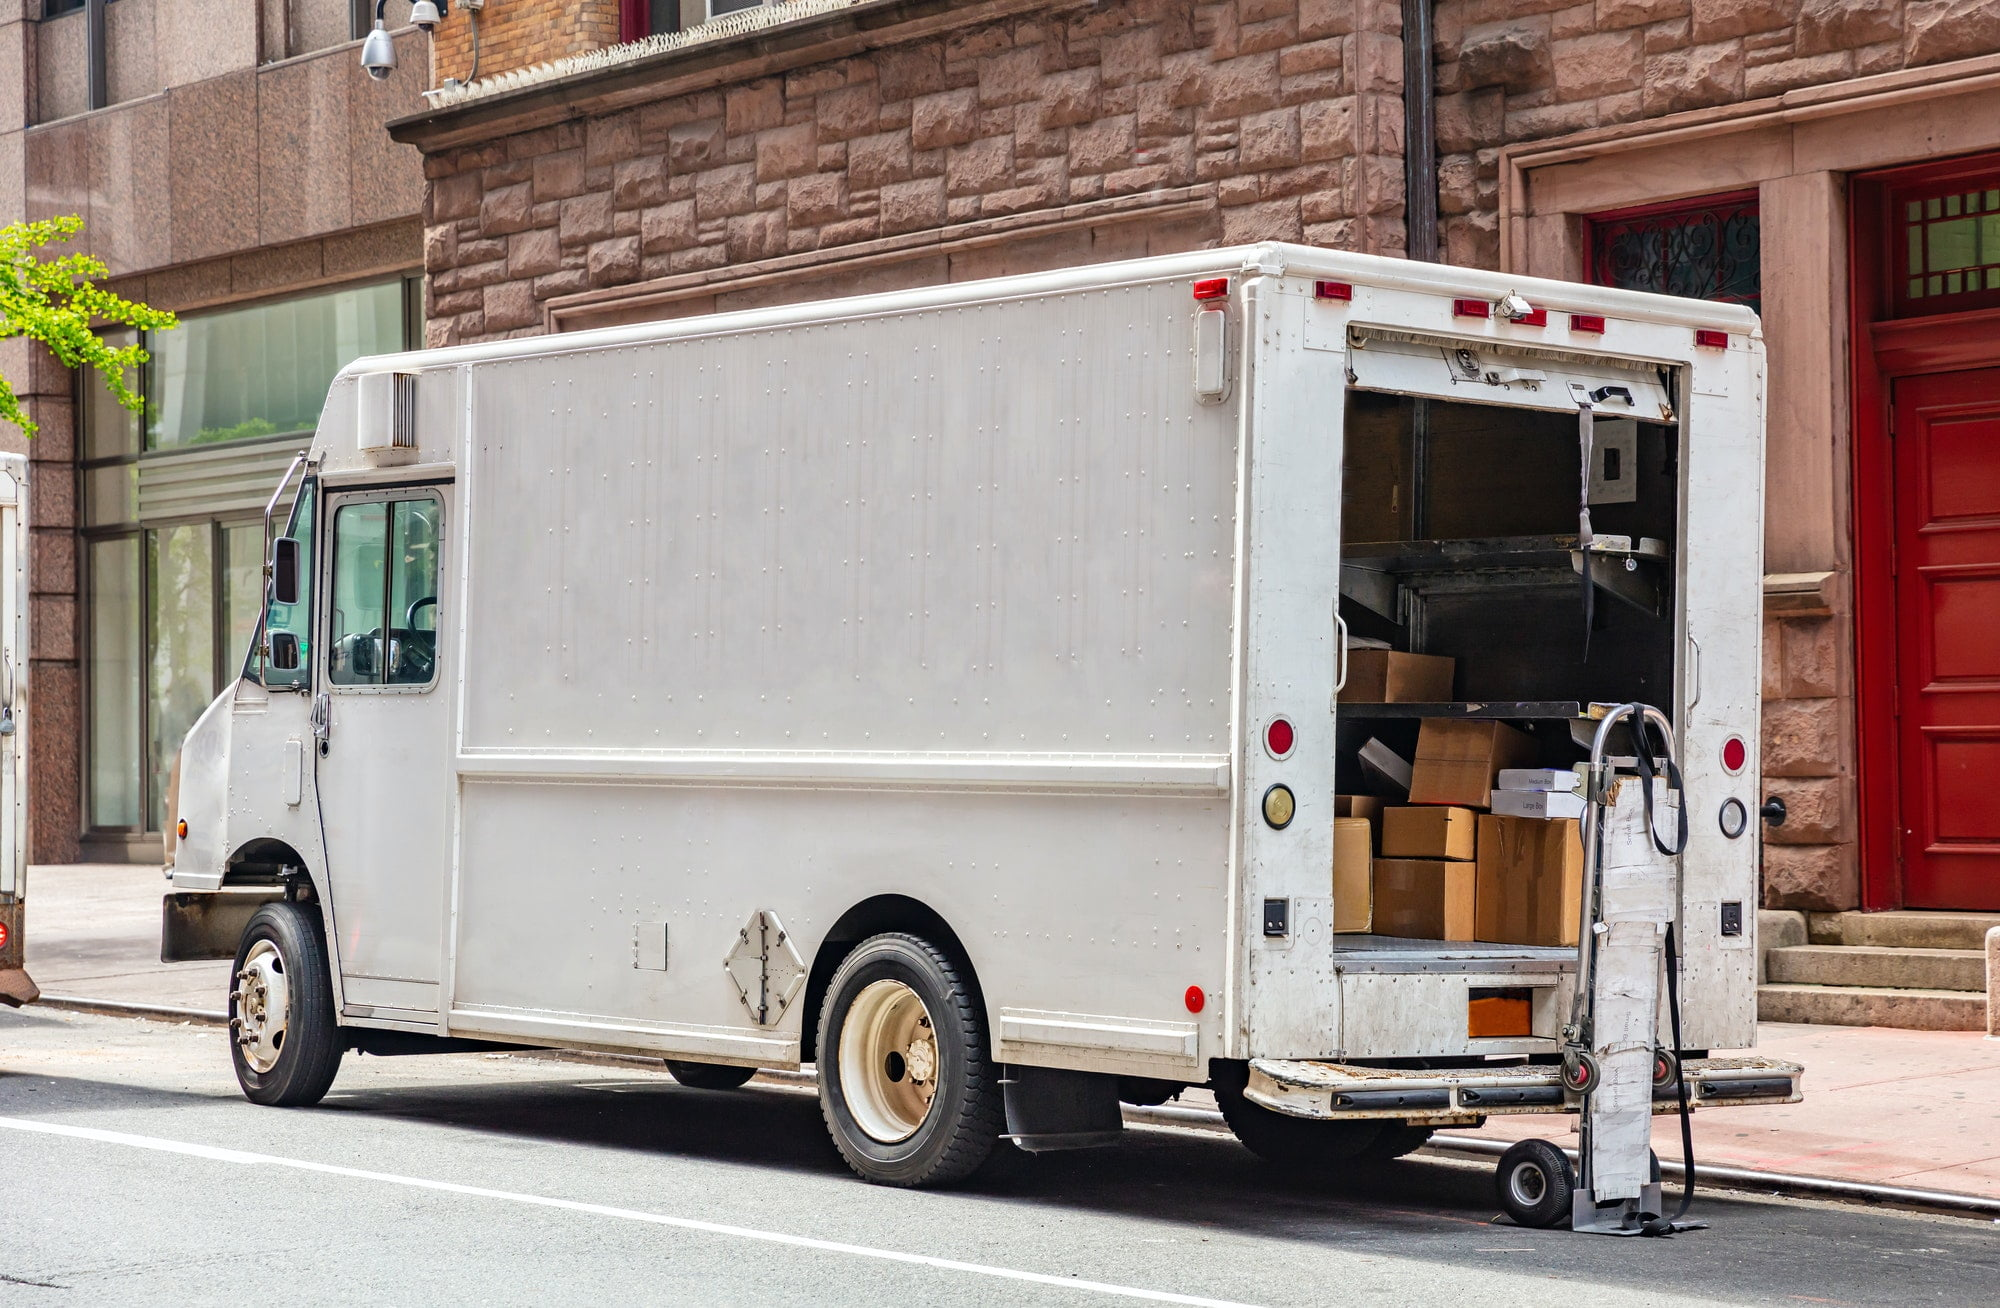 White color truck delivering packages, Manhattan downtown